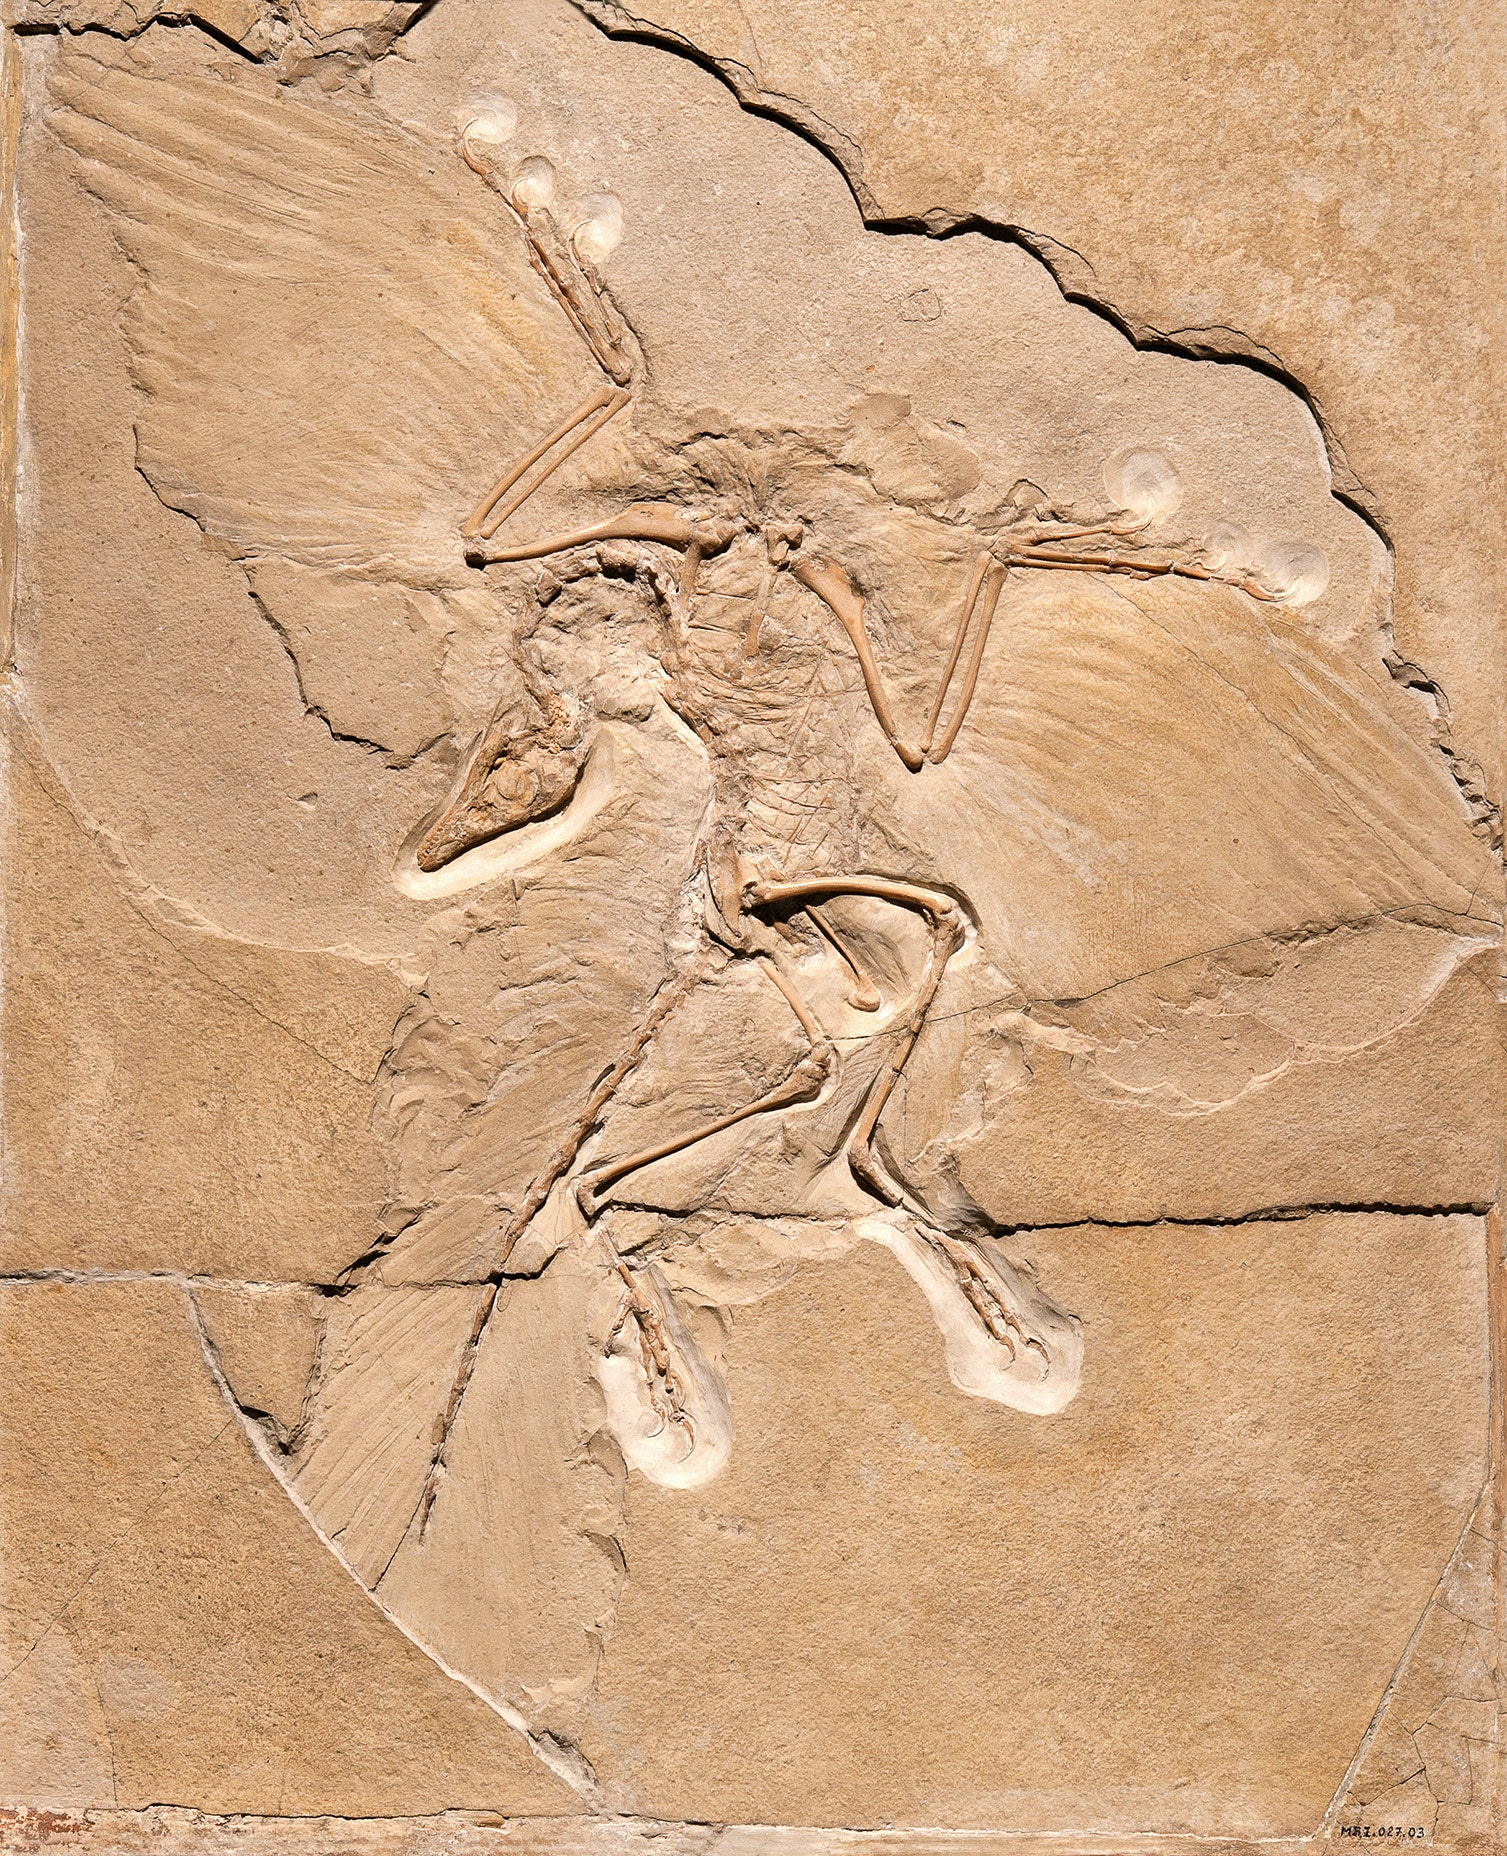 At the Museum für Naturkunde in Berlin, contemplate the connection between modern birds and ancient dinosaurs while studying a fossilized limestone impression of the Archaeopteryx.